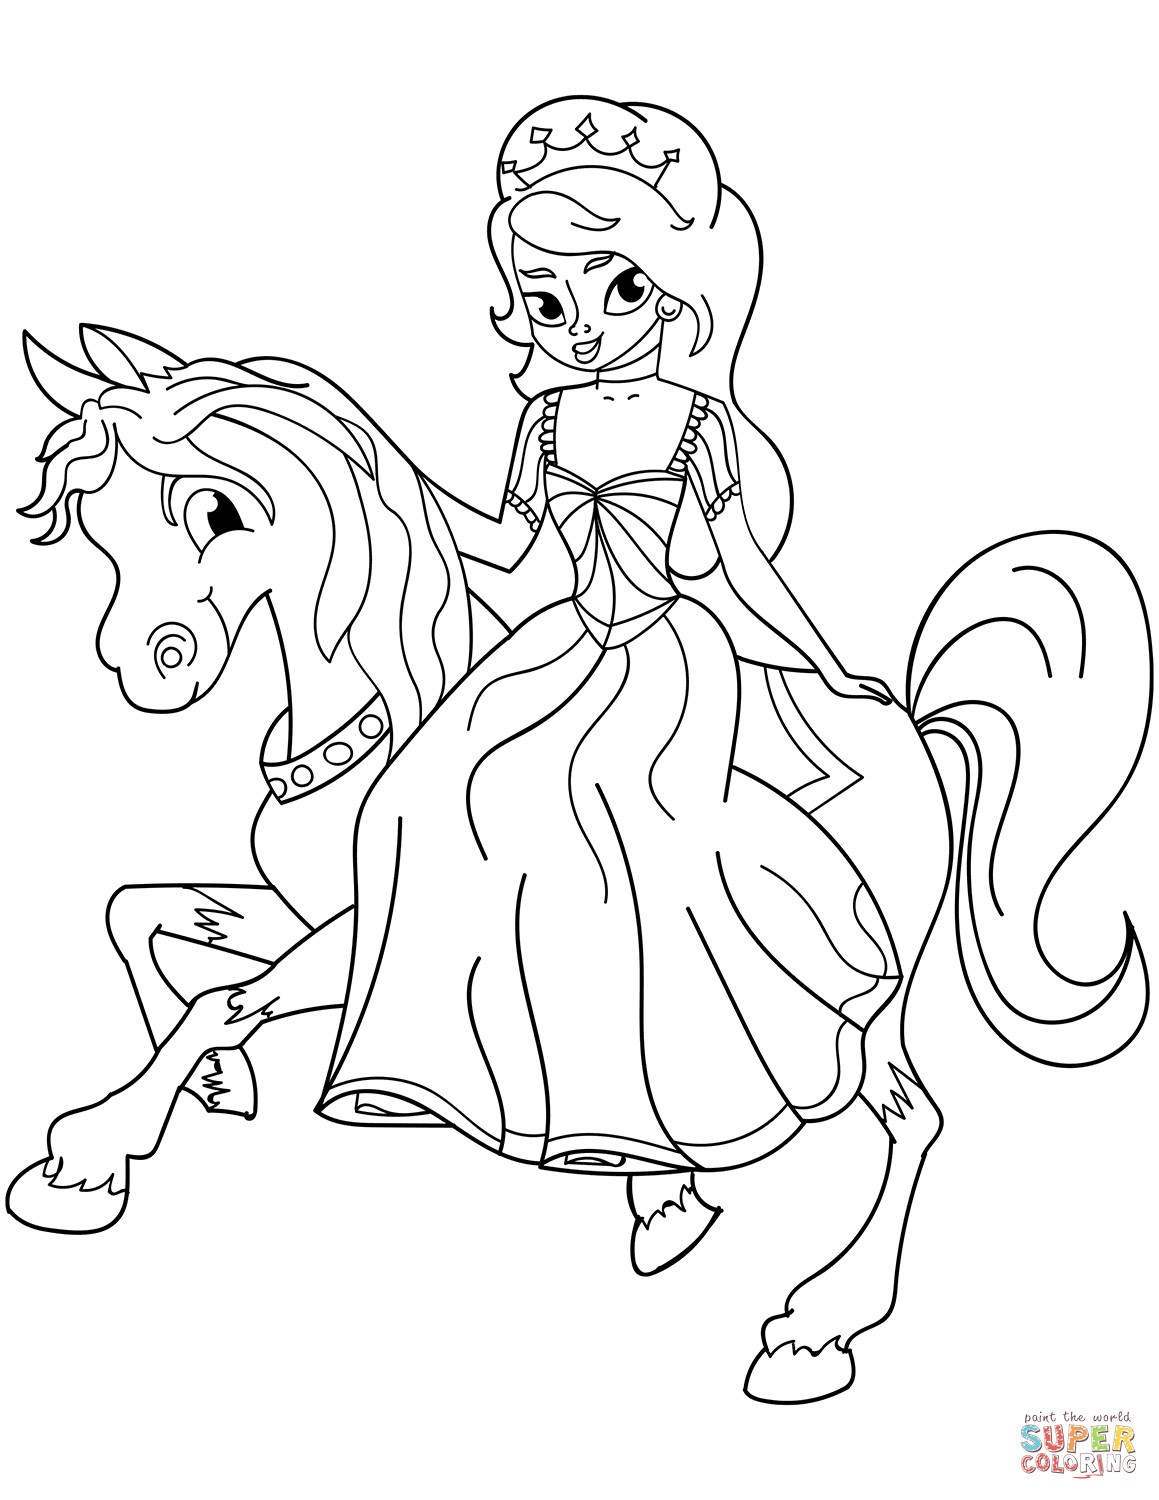 Best ideas about Free Princess Printable Coloring Pages . Save or Pin Princess Riding Horse coloring page Now.